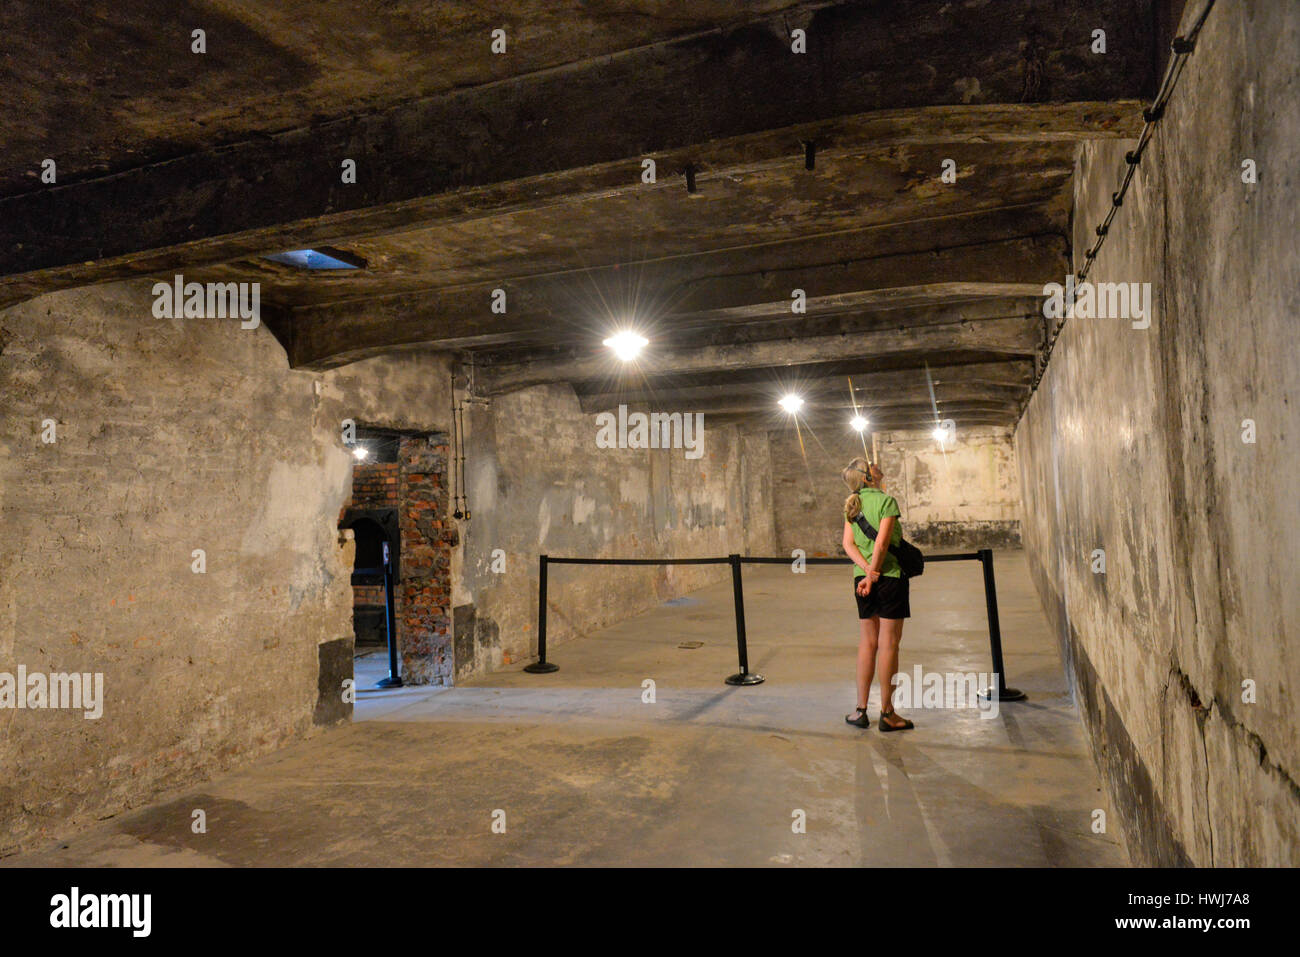 Arco Gas >> Gaskammer, Stammlager I, Konzentrationslager, Auschwitz-Birkenau Stock Photo: 136239888 - Alamy